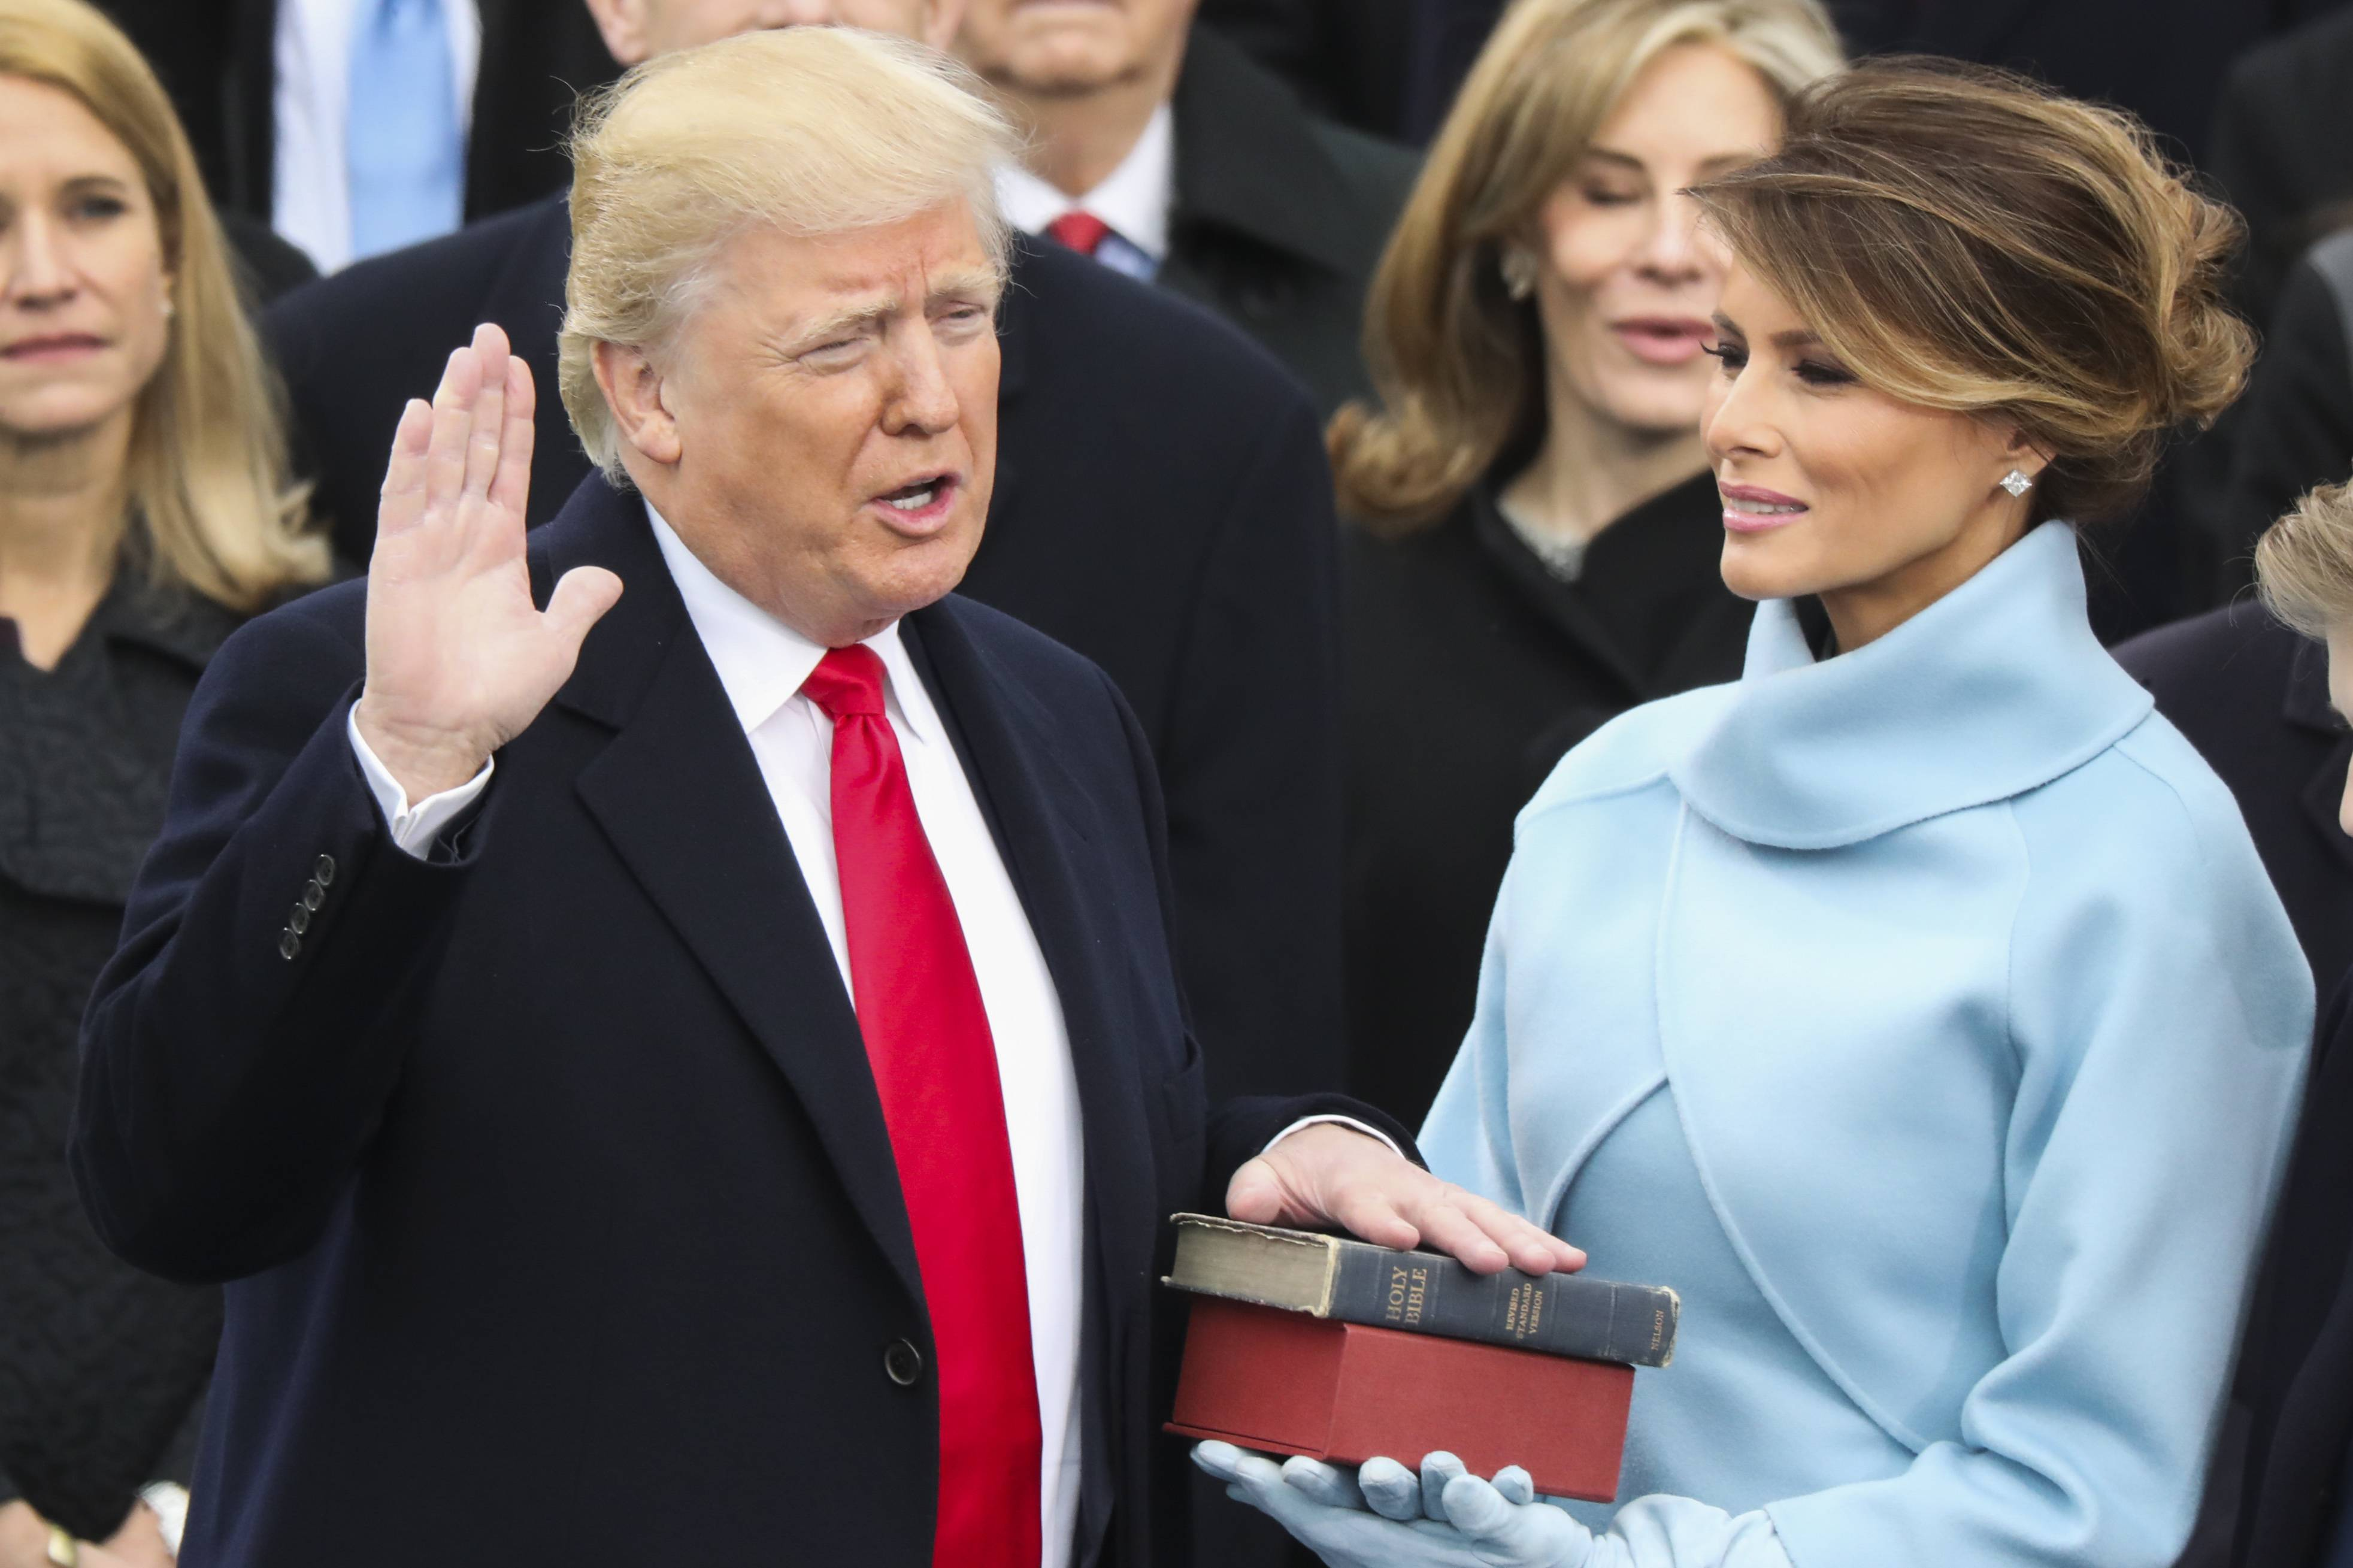 Donald Trump is sworn in as the 45th president of the United States as Melania Trump looks on during the 58th Presidential Inauguration at the U.S. Capitol in Washington, Friday, Jan. 20, 2017.